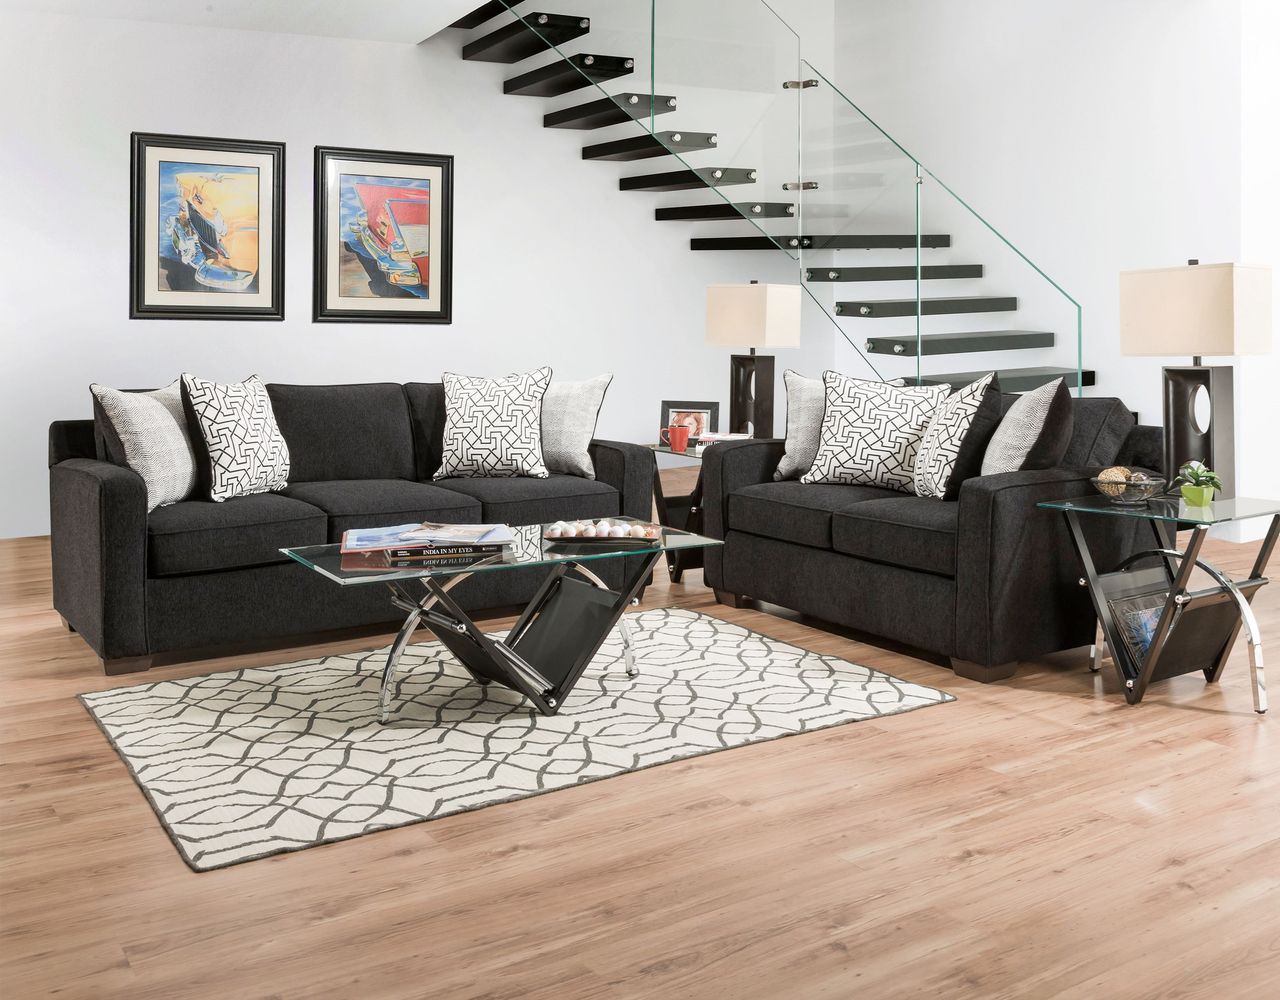 Prime American Guild Ebony Sofa Loveseat Set Get It Today Caraccident5 Cool Chair Designs And Ideas Caraccident5Info